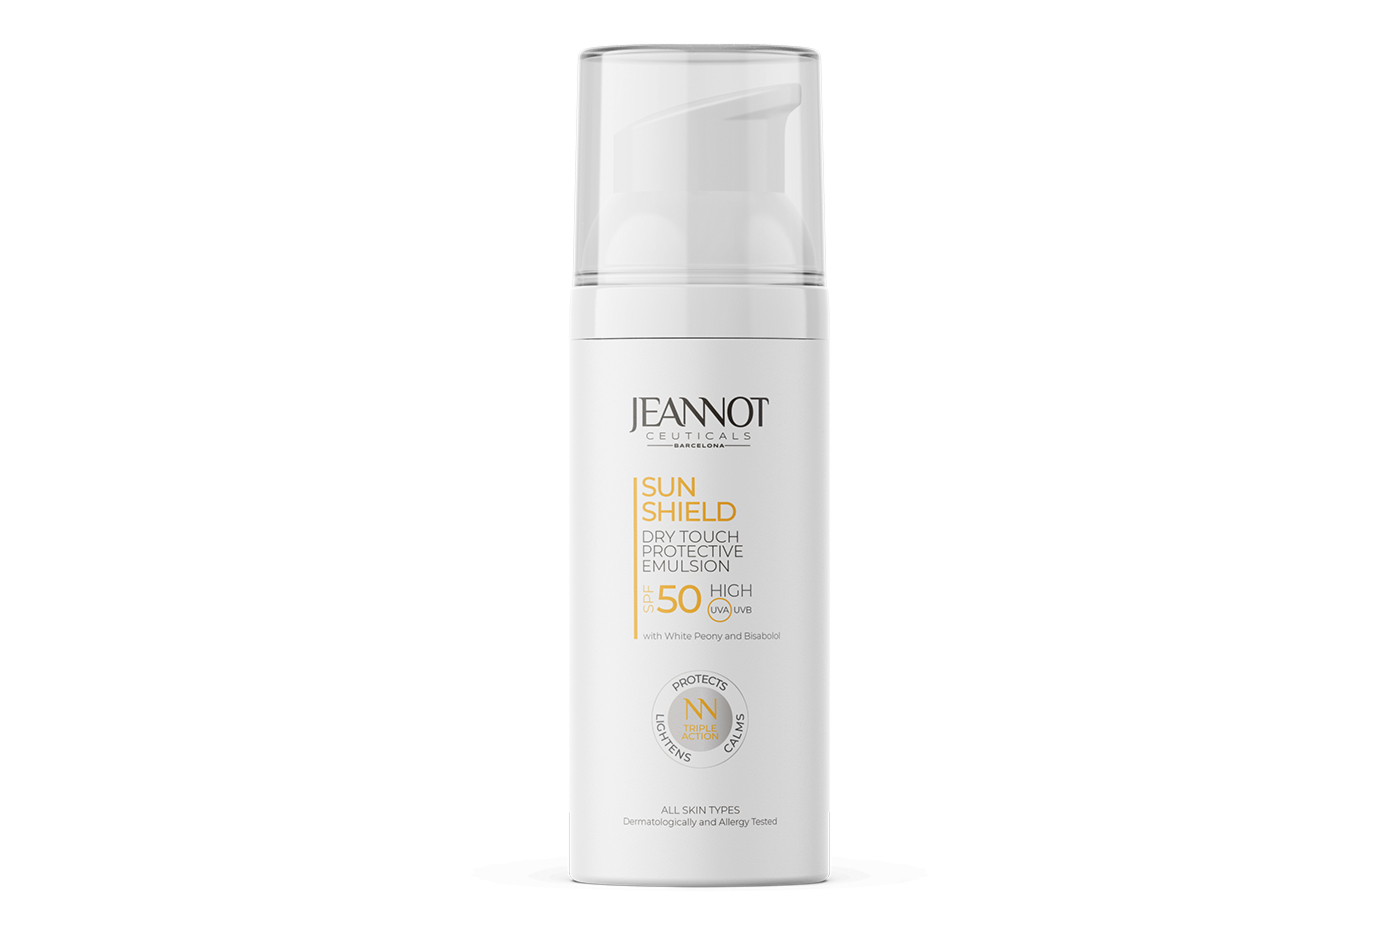 Jeannot Ceuticals provides sun-shield